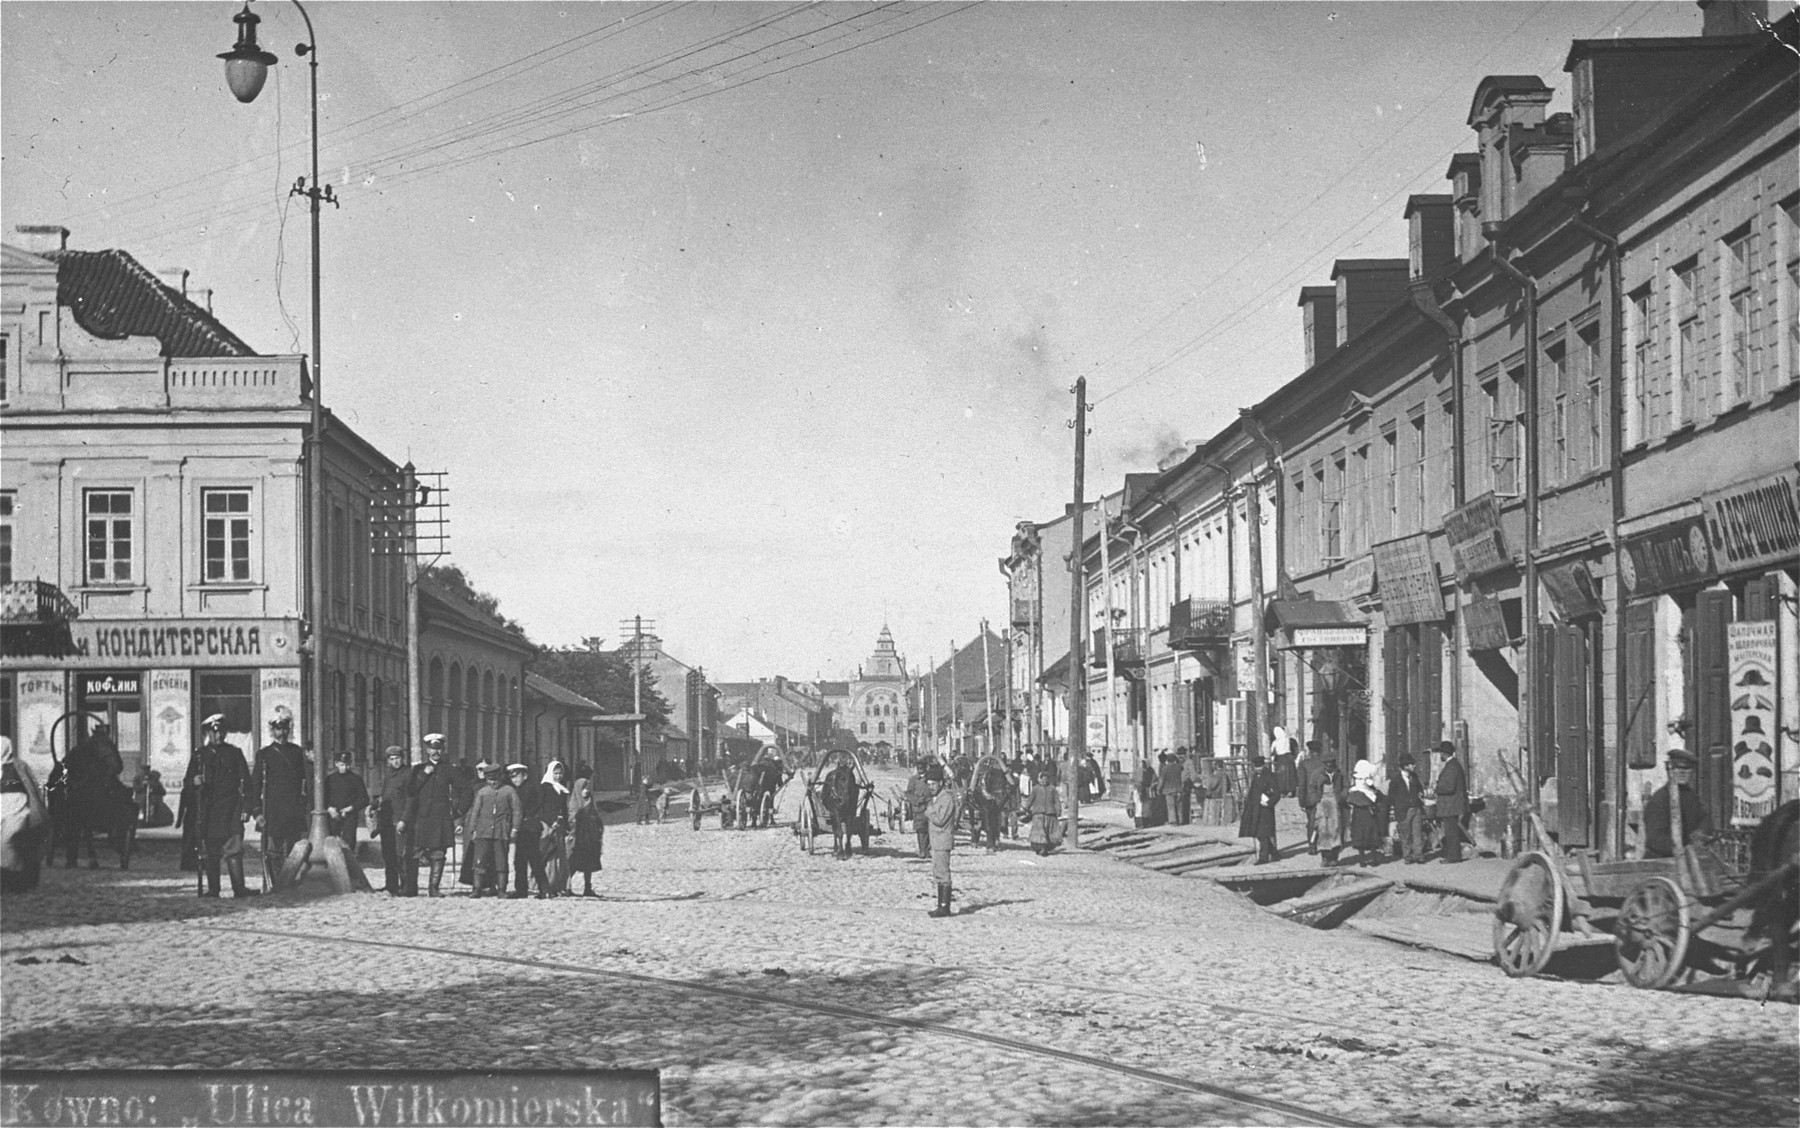 View of a street scene in Kaunas.